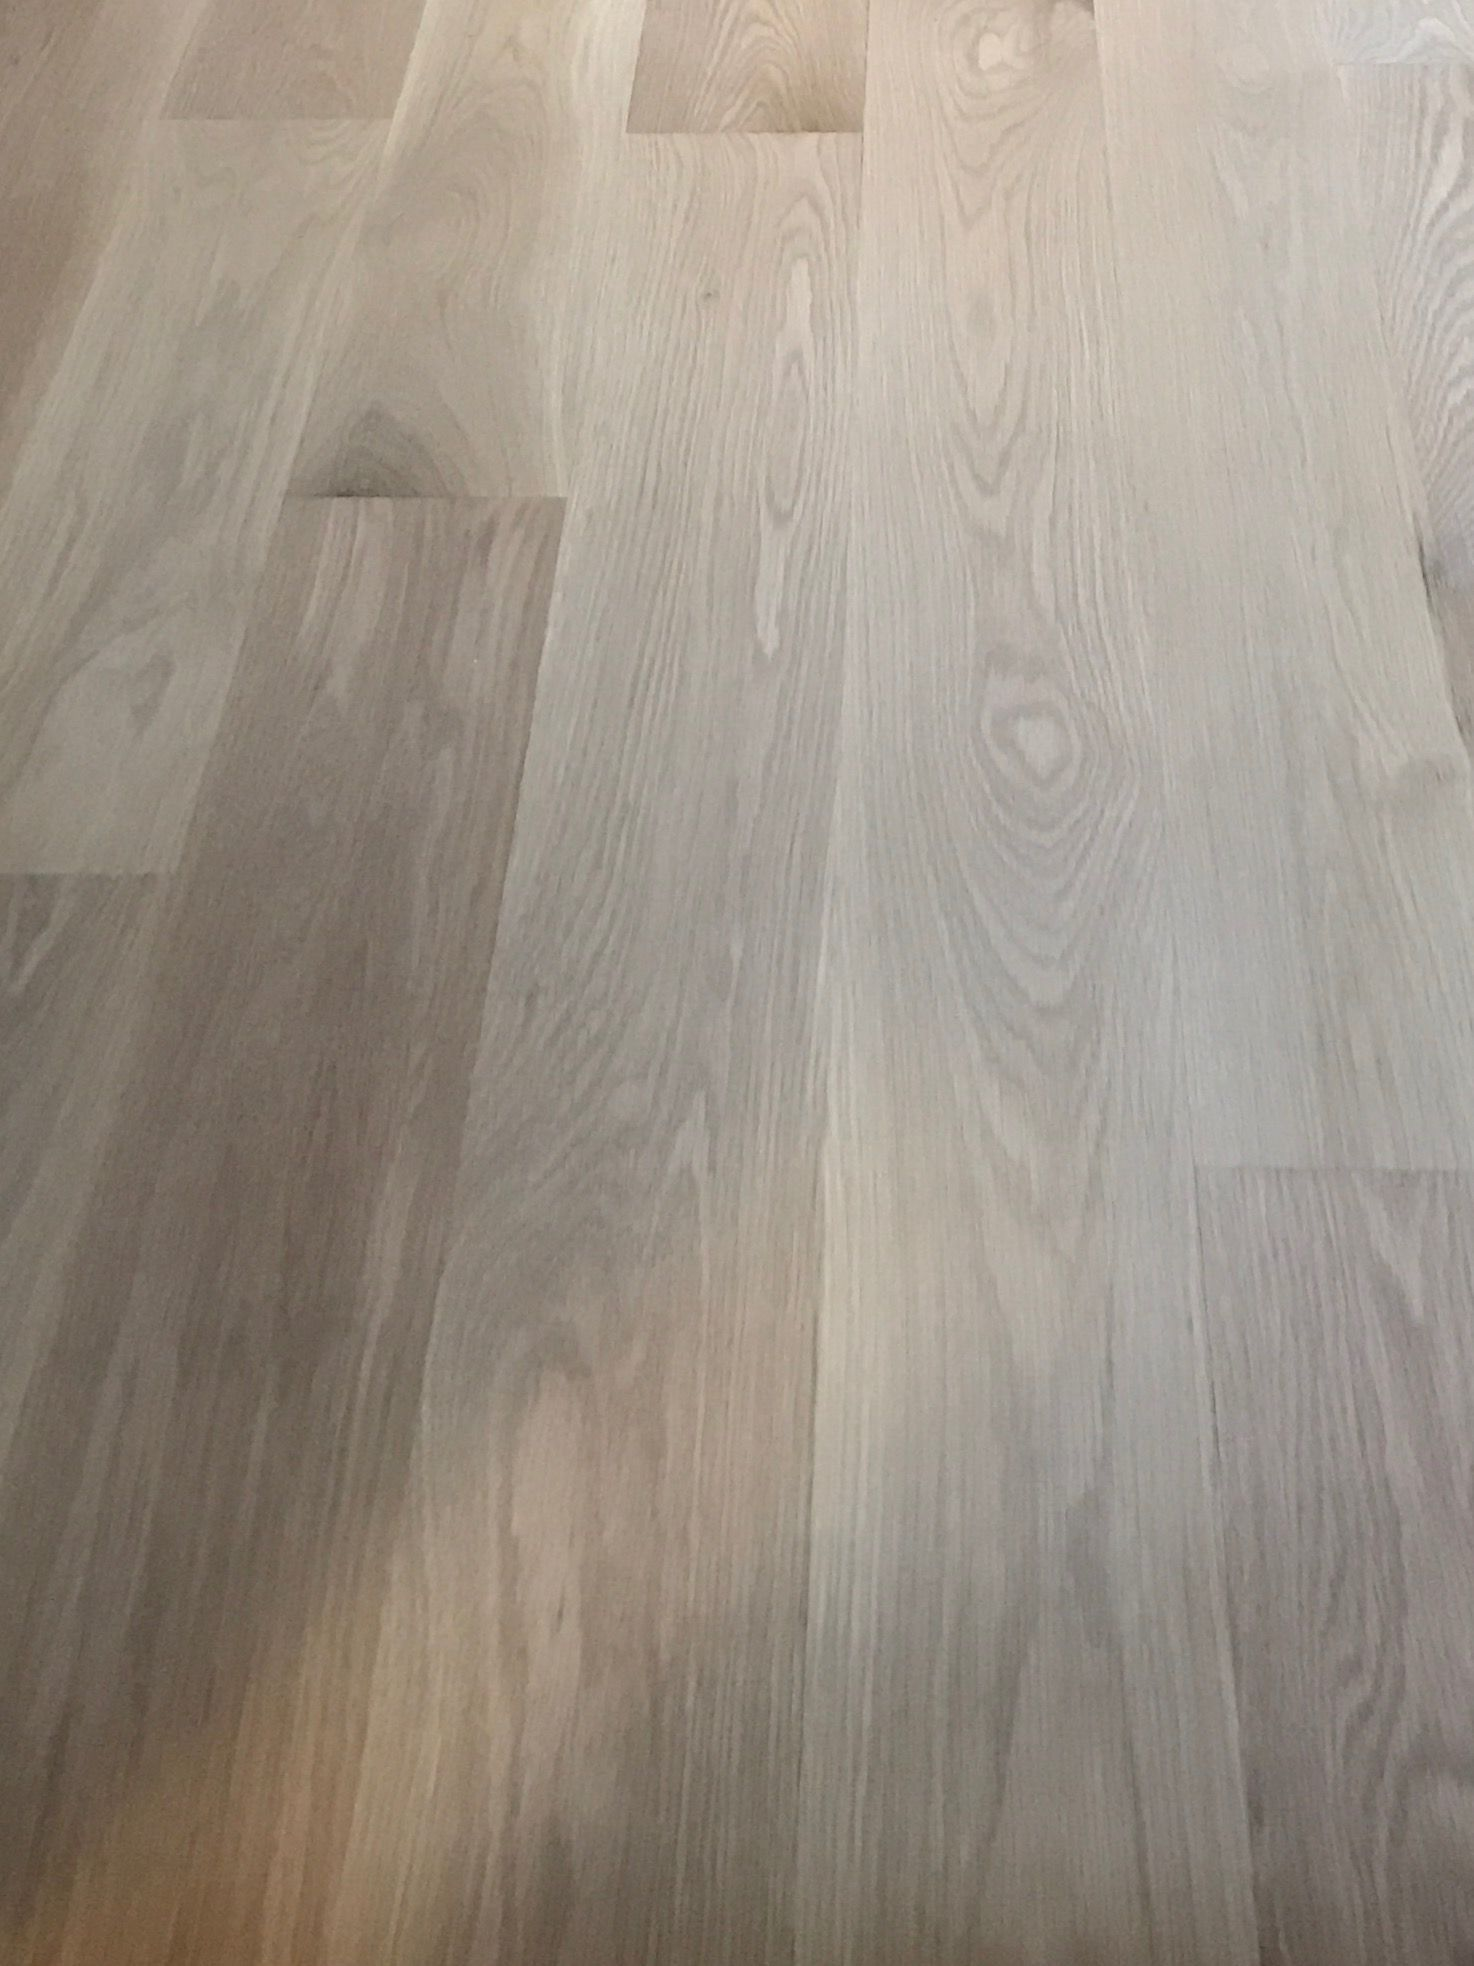 White Oak Floors With Pickled Wash On Wiped Off Then Ultra